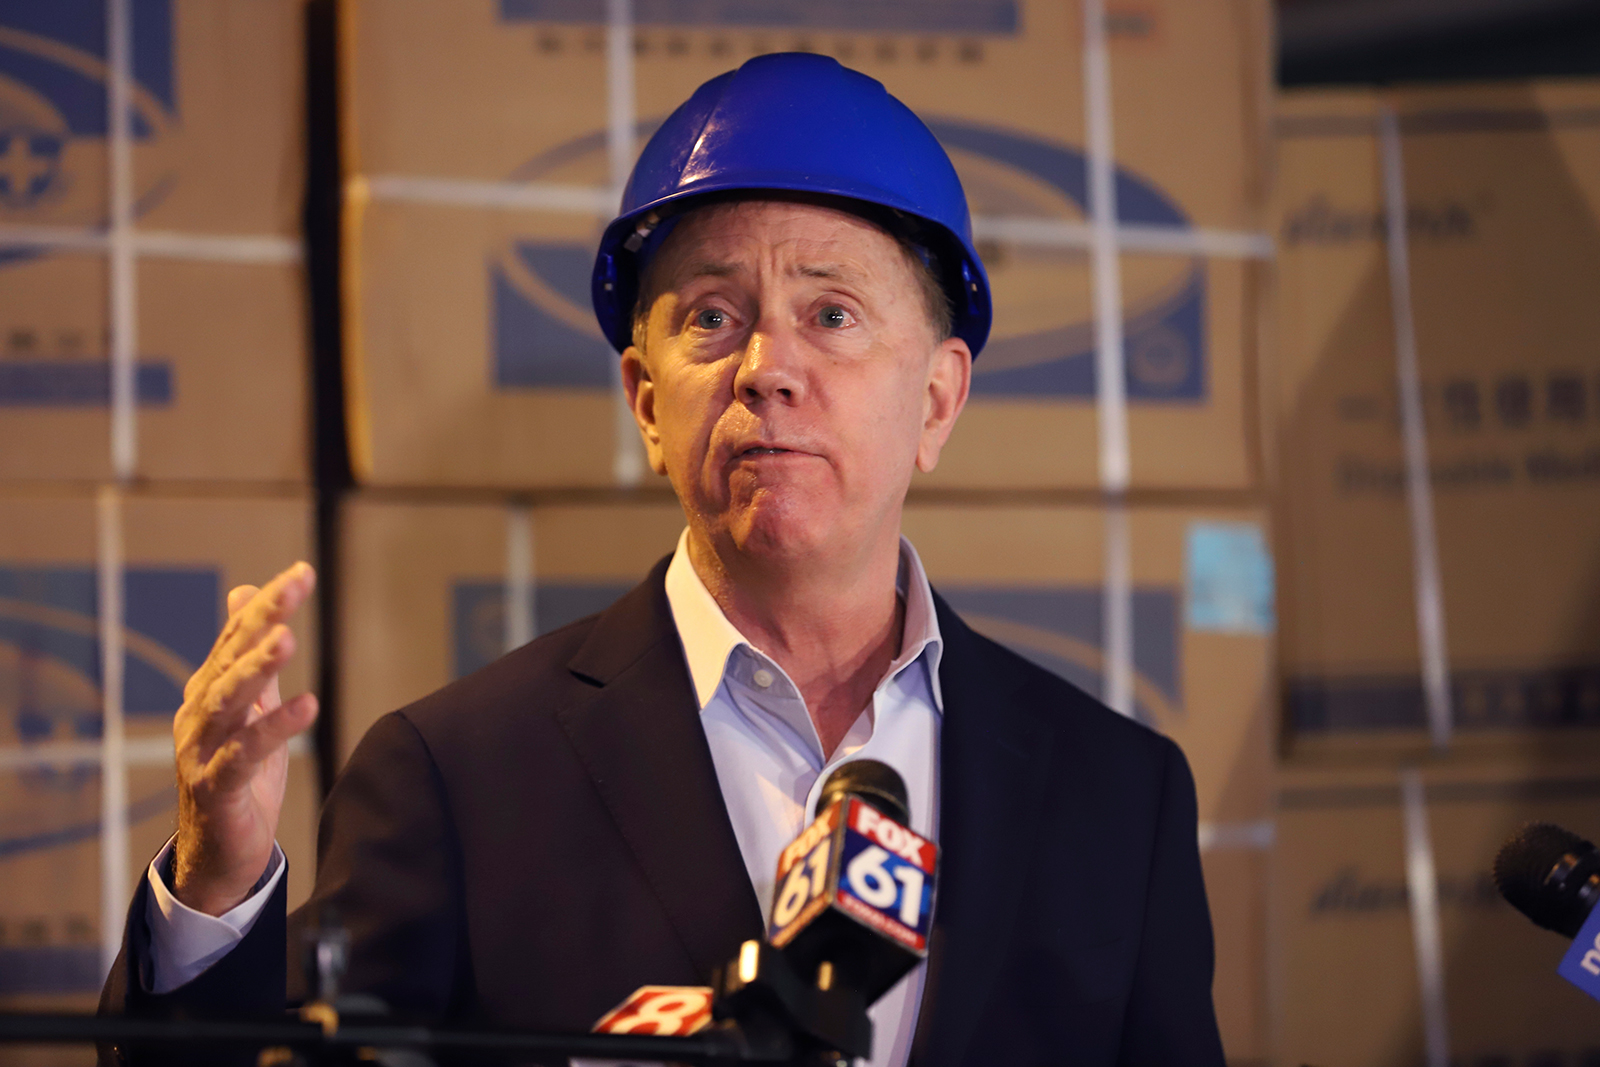 Gov. Ned Lamont speaks to the media in New Britain, Connecticut on Tuesday, May 12.